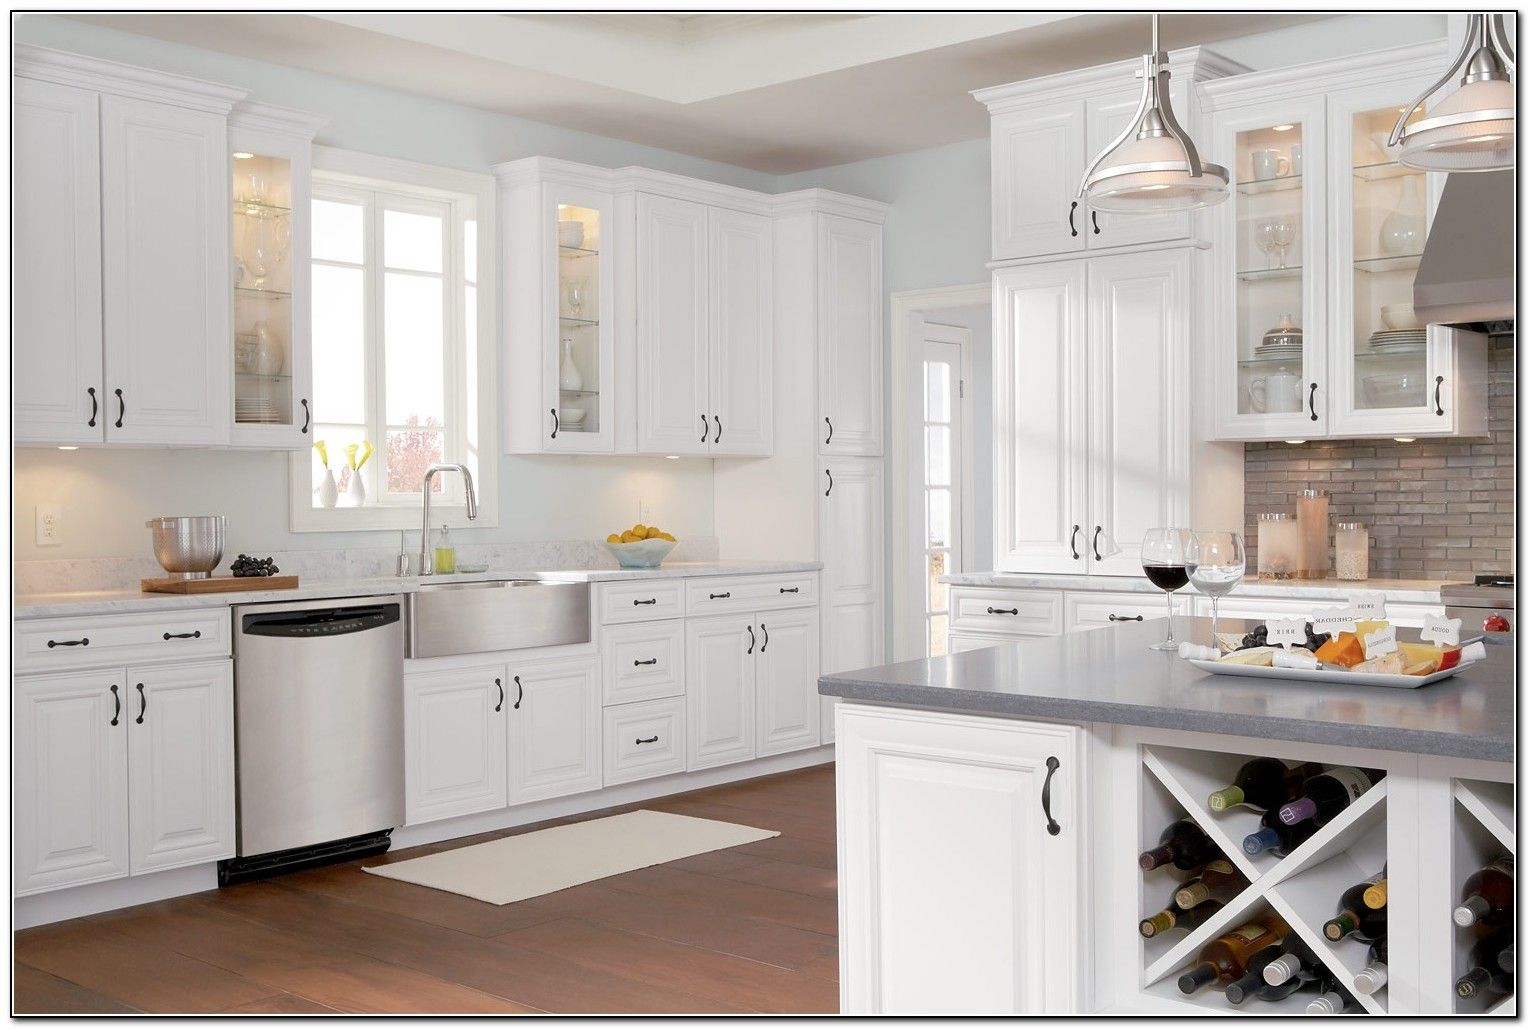 Bon Home Depot Kitchen Cabinets 20 Off